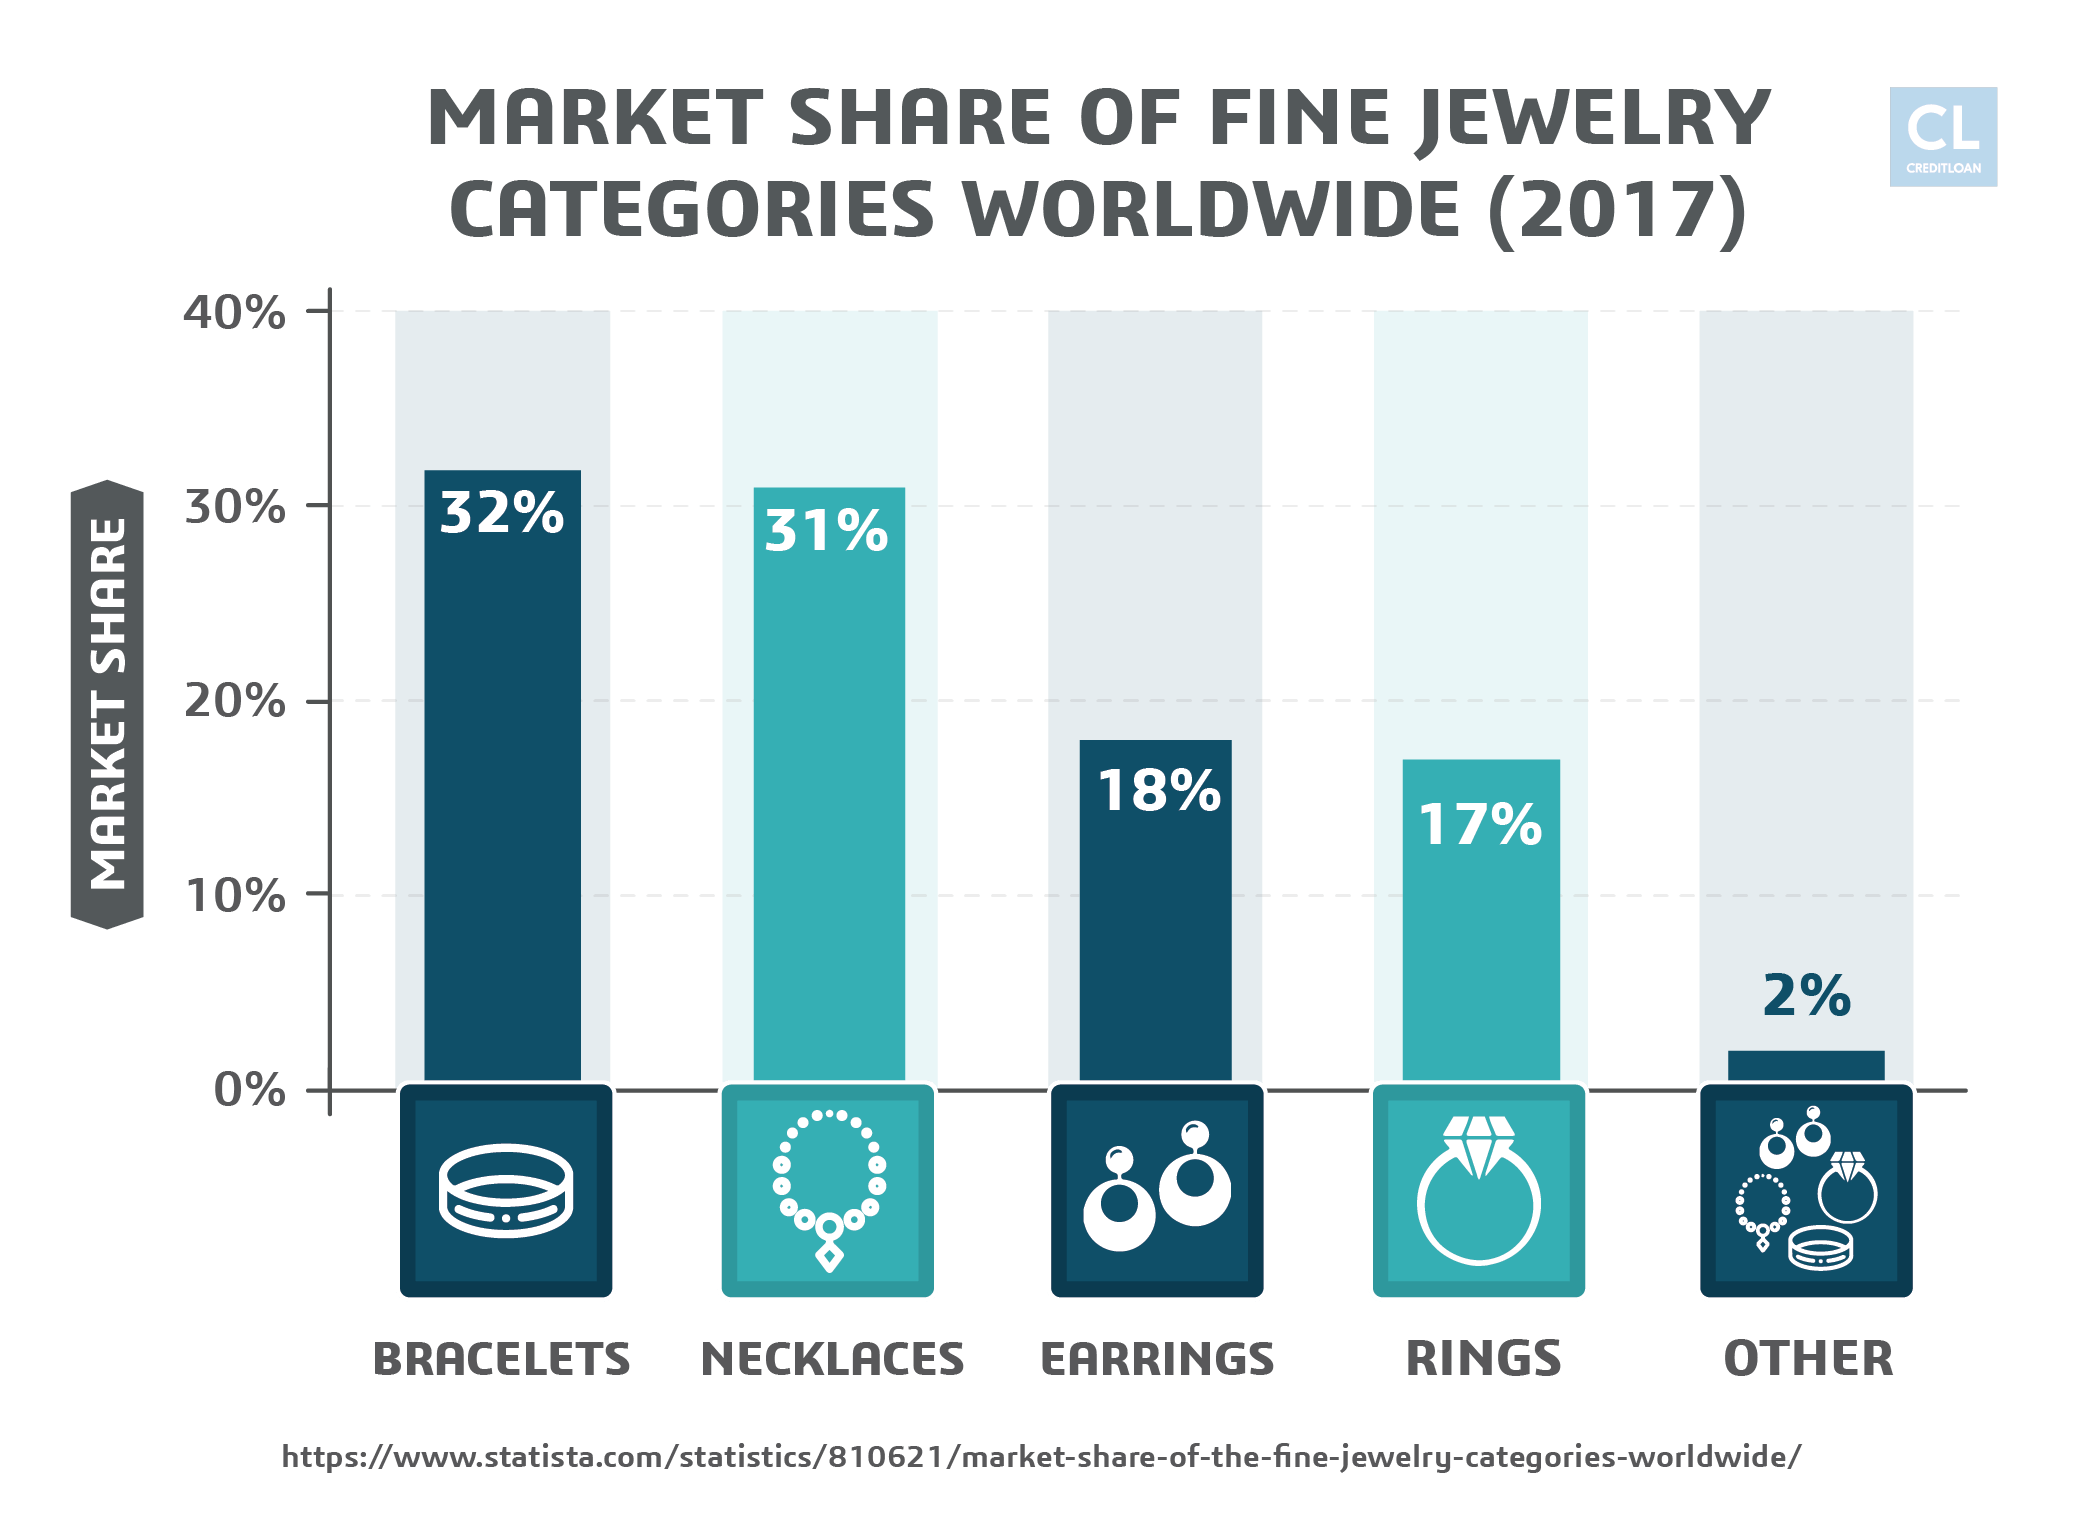 2017 Market Share of Fine Jewelry Categories Worldwide